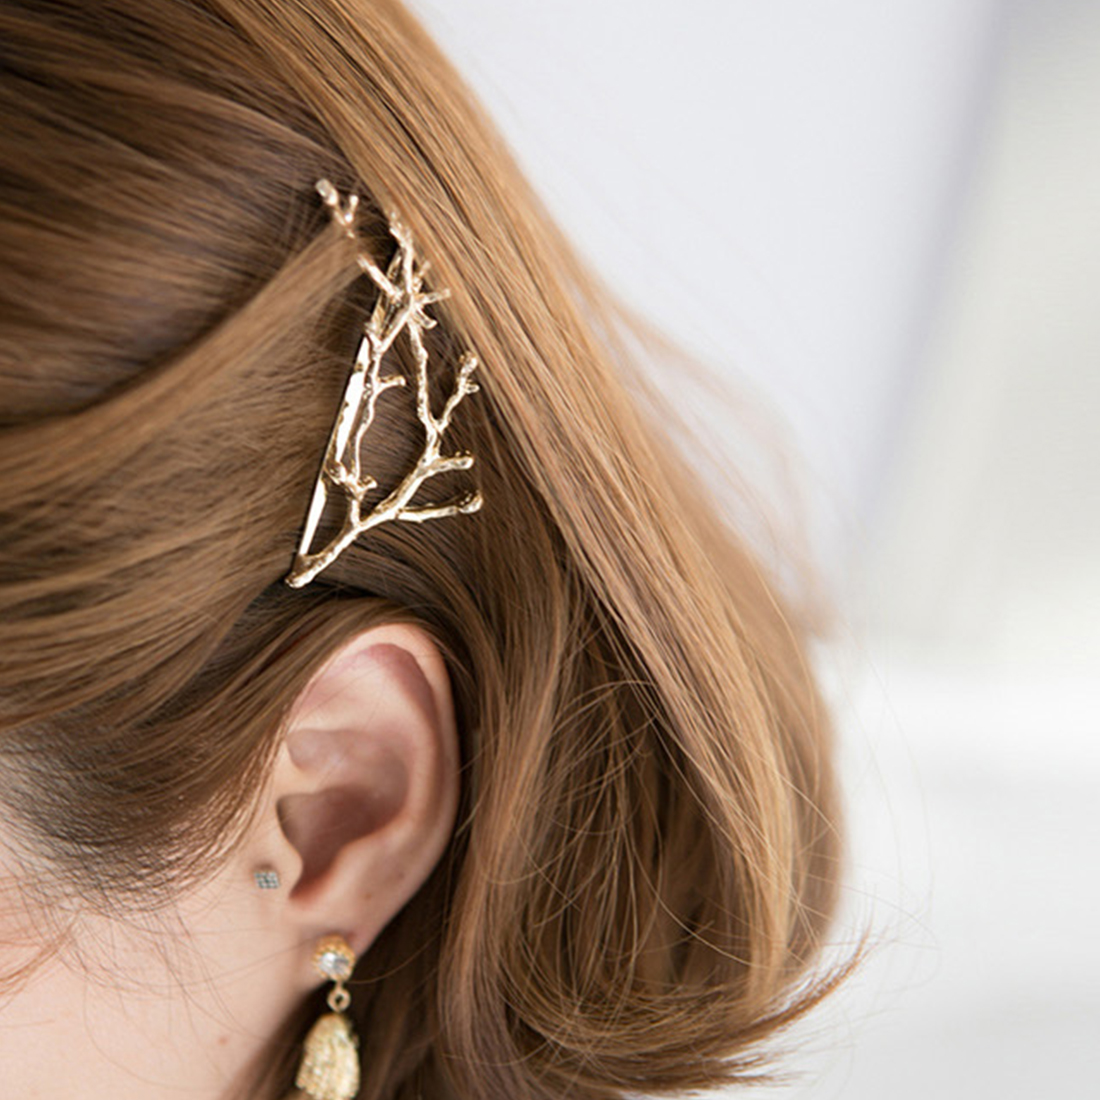 Hairpins Gold Silver Hair Clips For Women Bobby Pins 2PCS Metal Leaf Hairpins